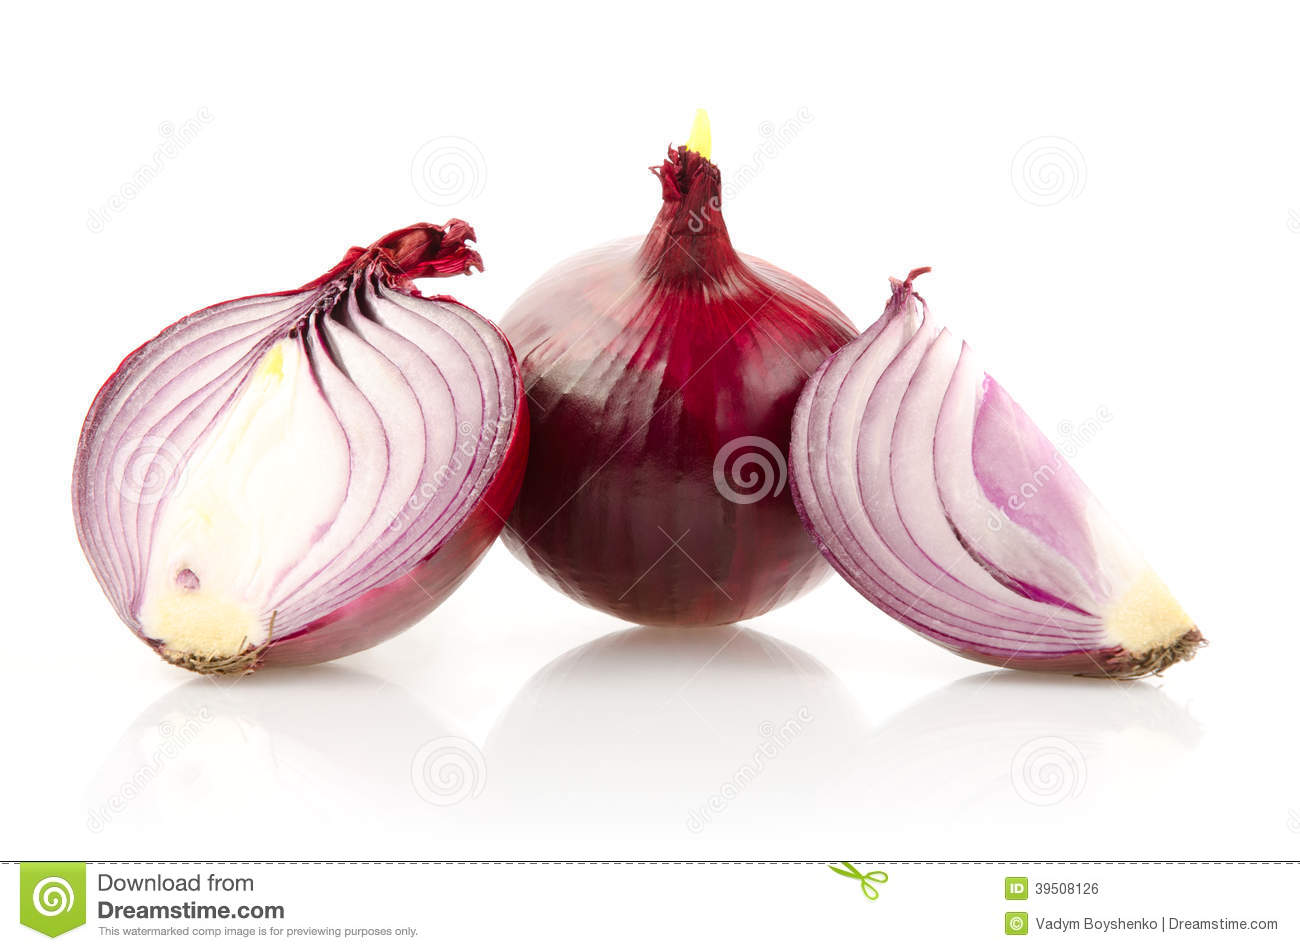 Red Onion with Half on White Background